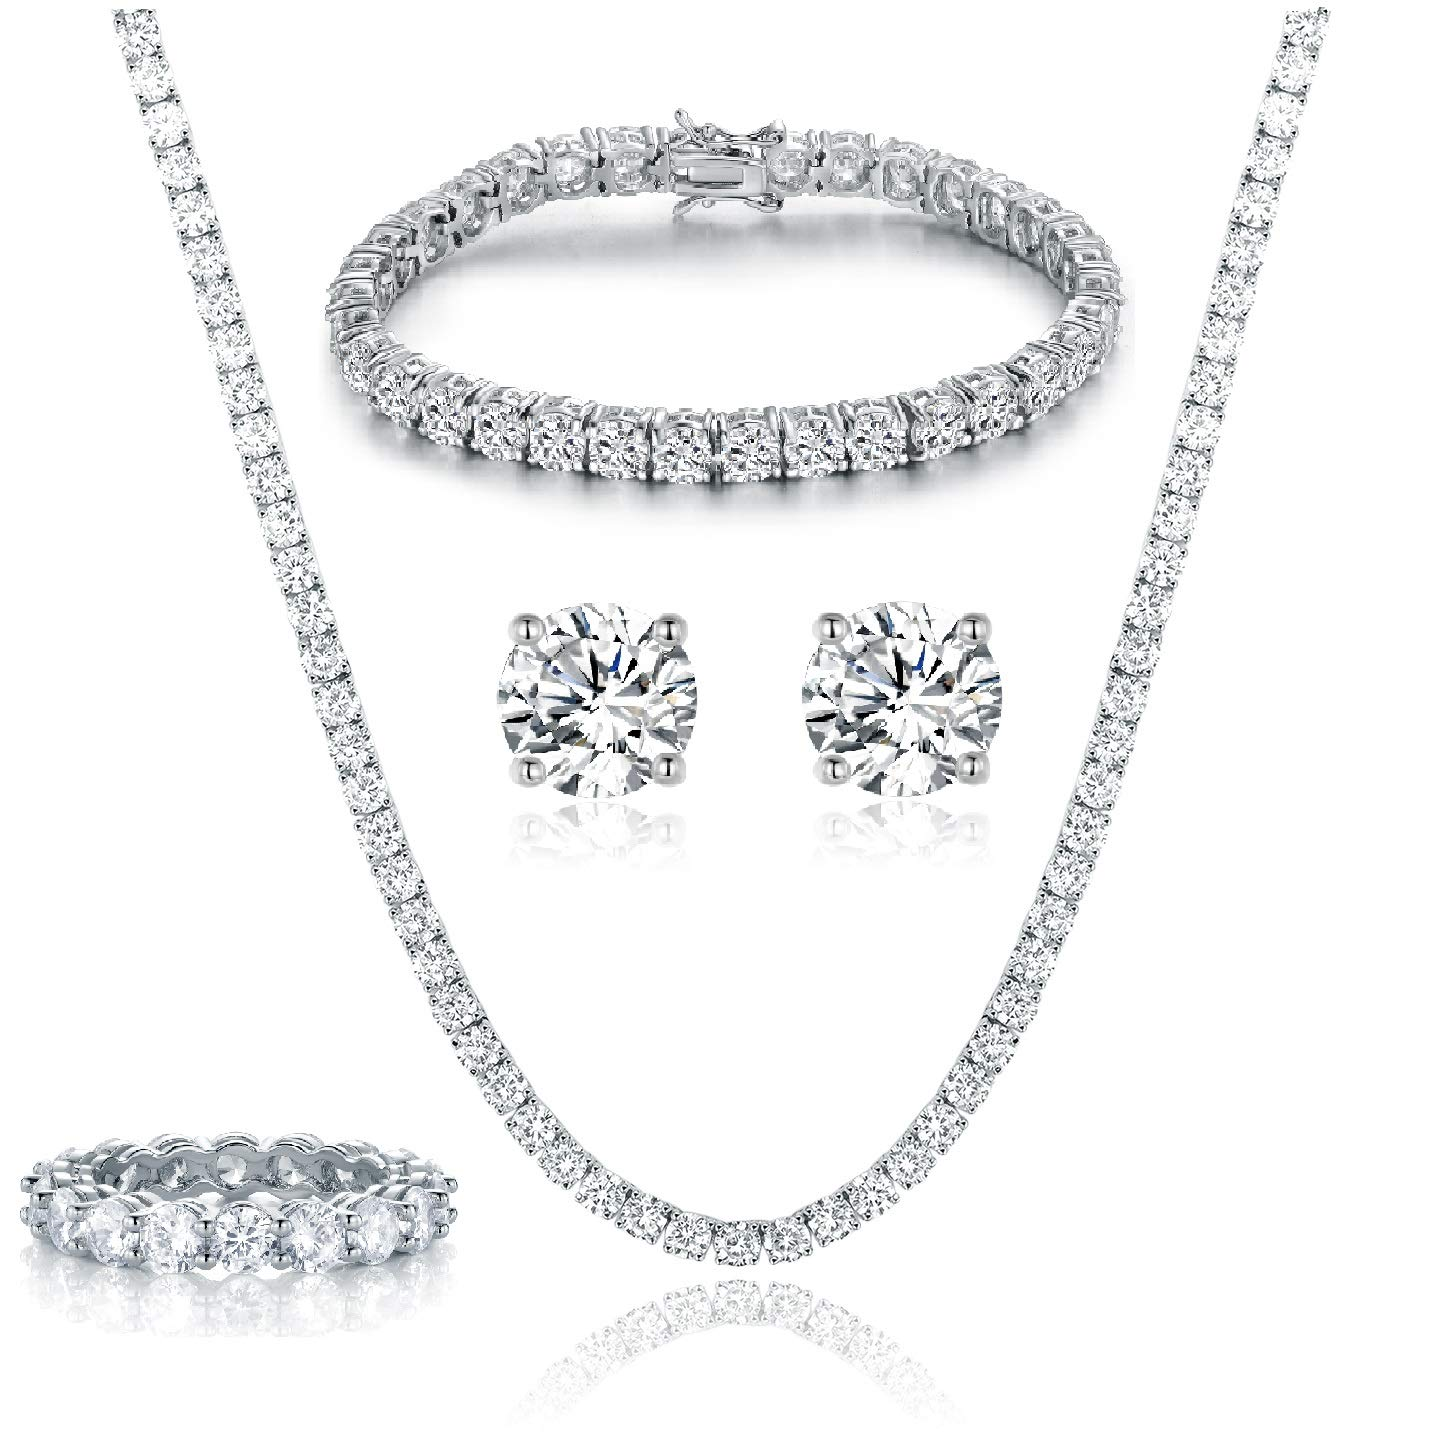 GEMSME 18K White Gold Plated Tennis Necklace/Bracelet/Earrings/Band Ring Sets Pack of 4 (8)